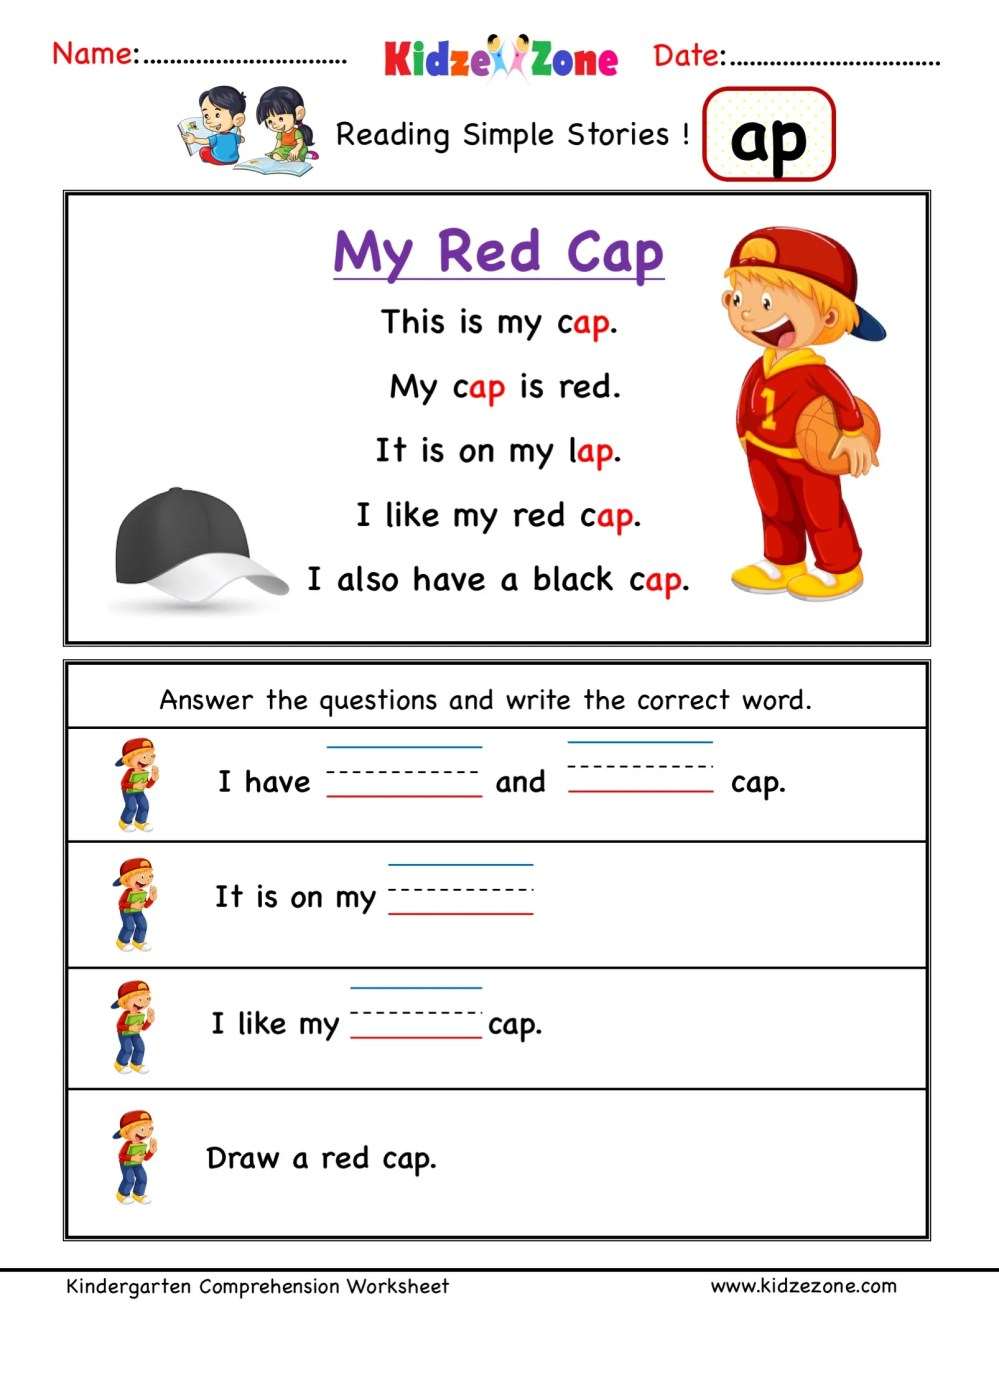 medium resolution of Kindergarten worksheets - ap word family reading Comprehension 4